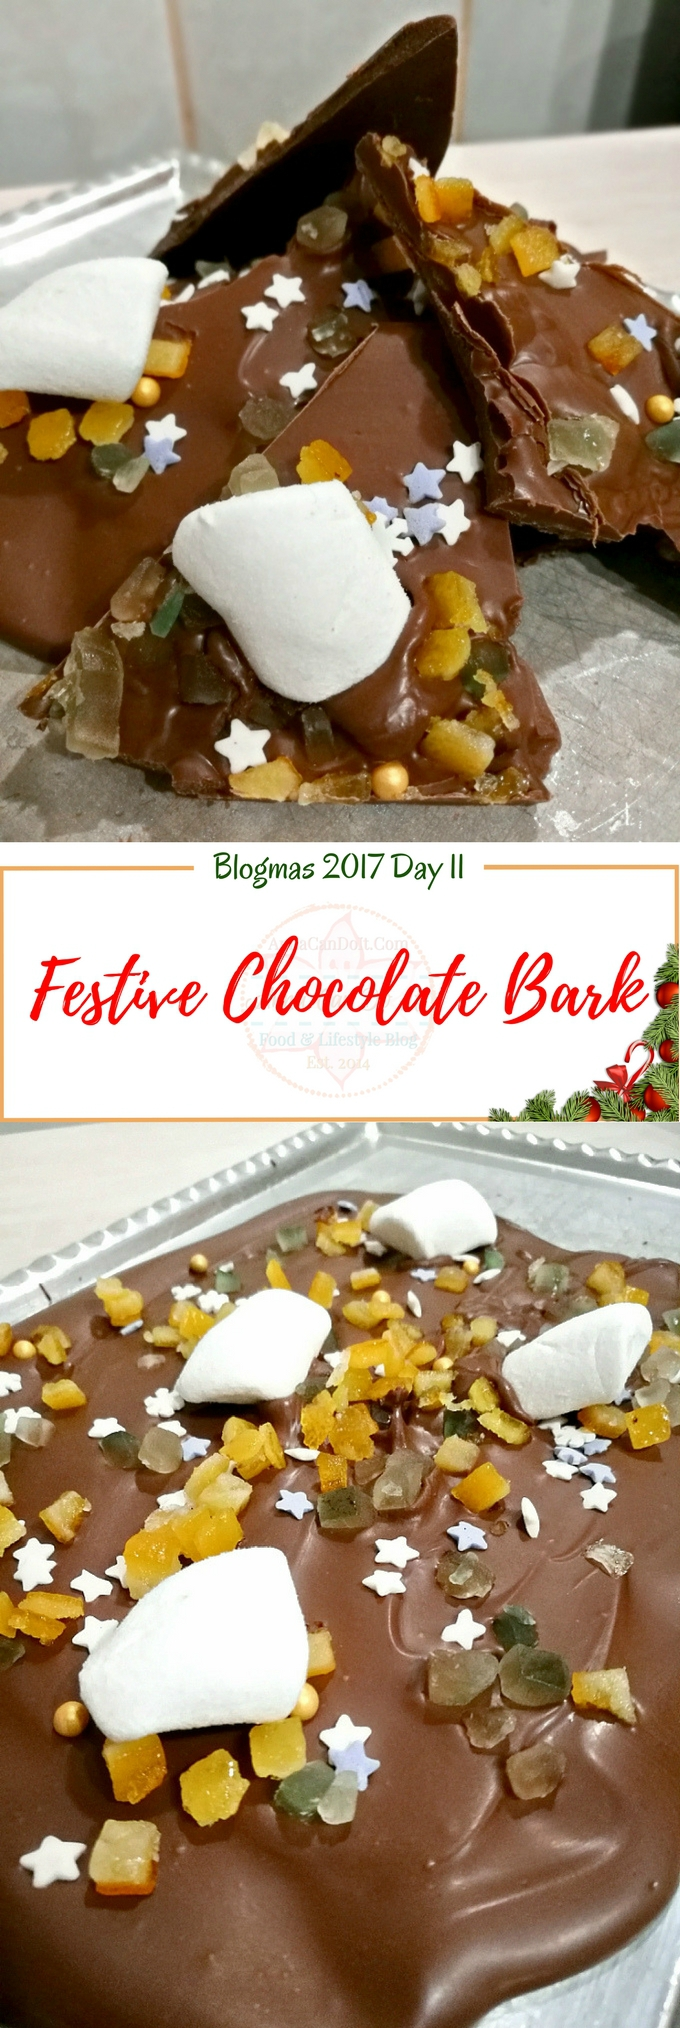 Festive Chocolate Bark - Blogmas 2017 Day 11 - Anna Can Do It!